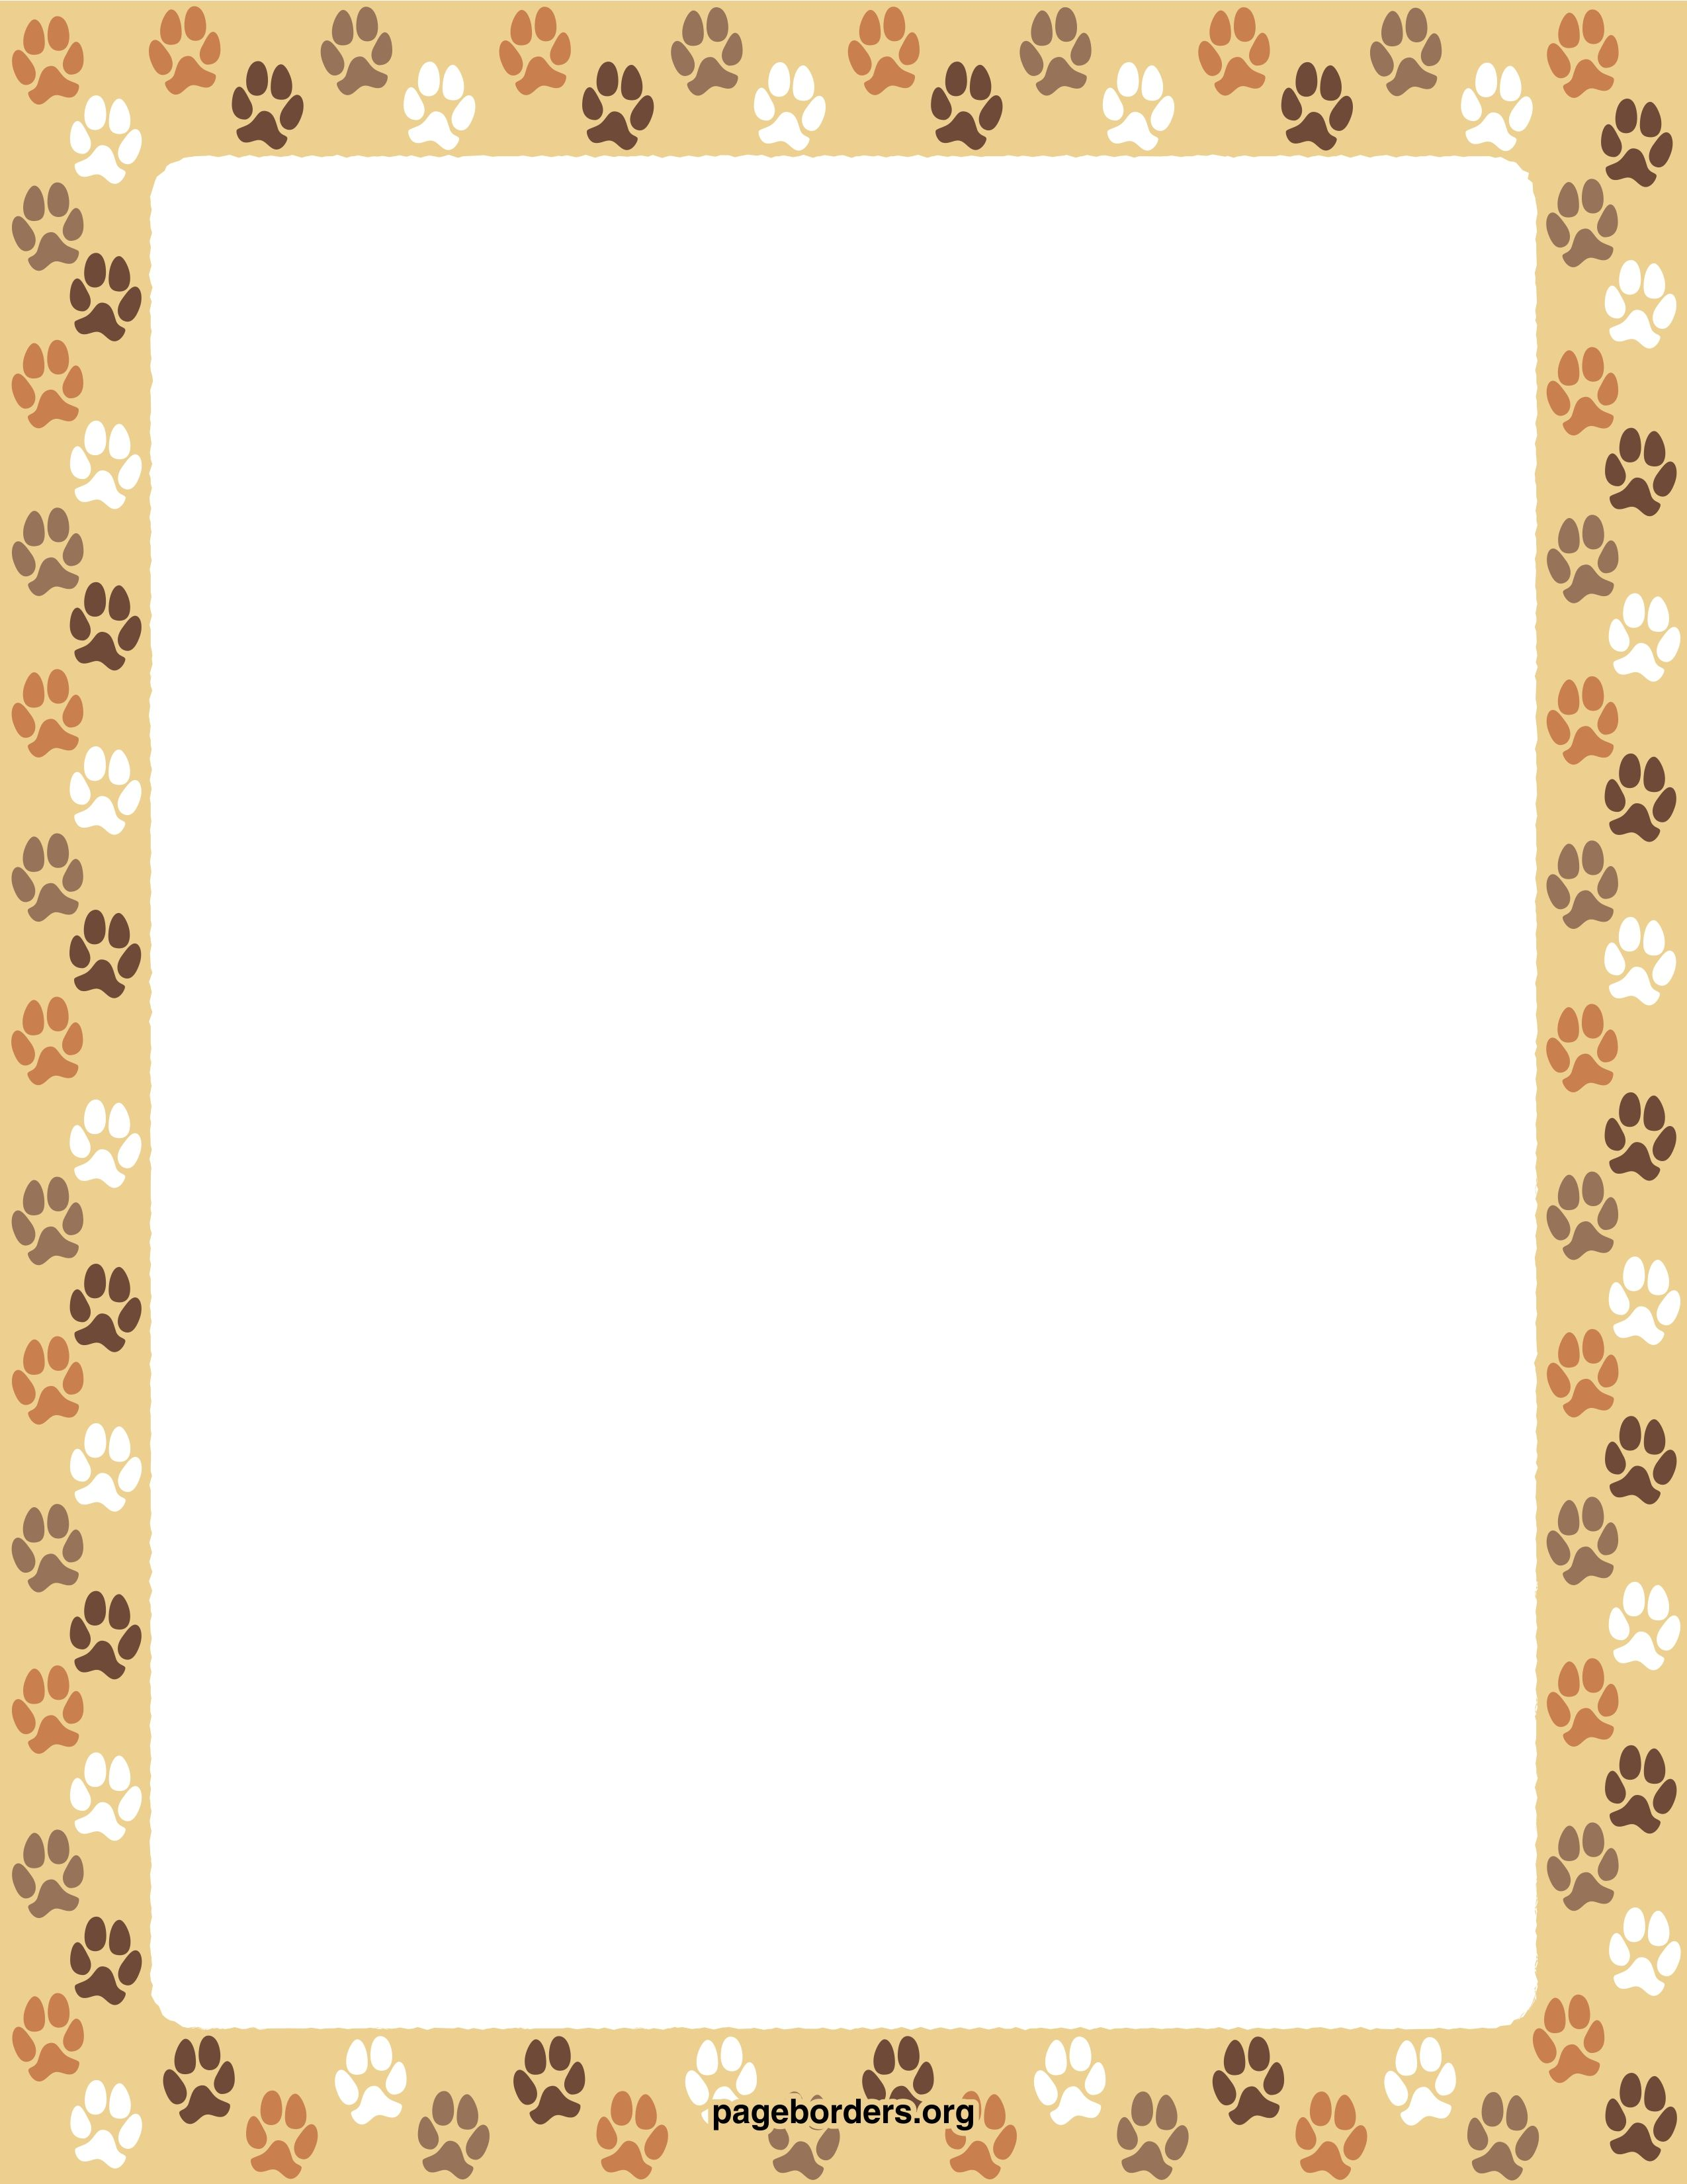 Pin by donna kay. Clipart dogs picture frame